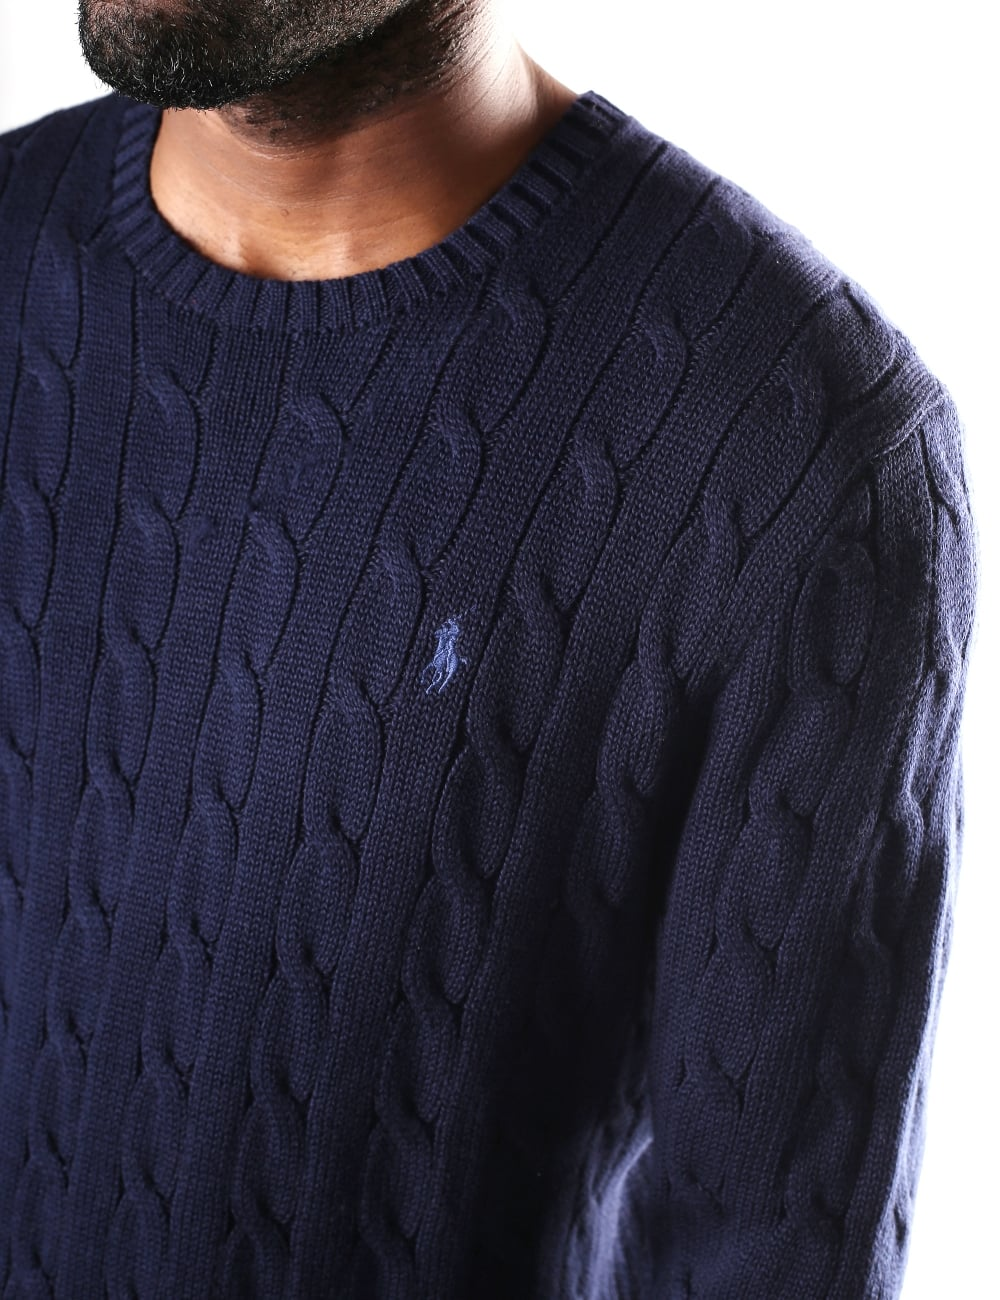 79eecf202db9b1 Polo Ralph Lauren Men's Crew Neck Cable Knit Jumper